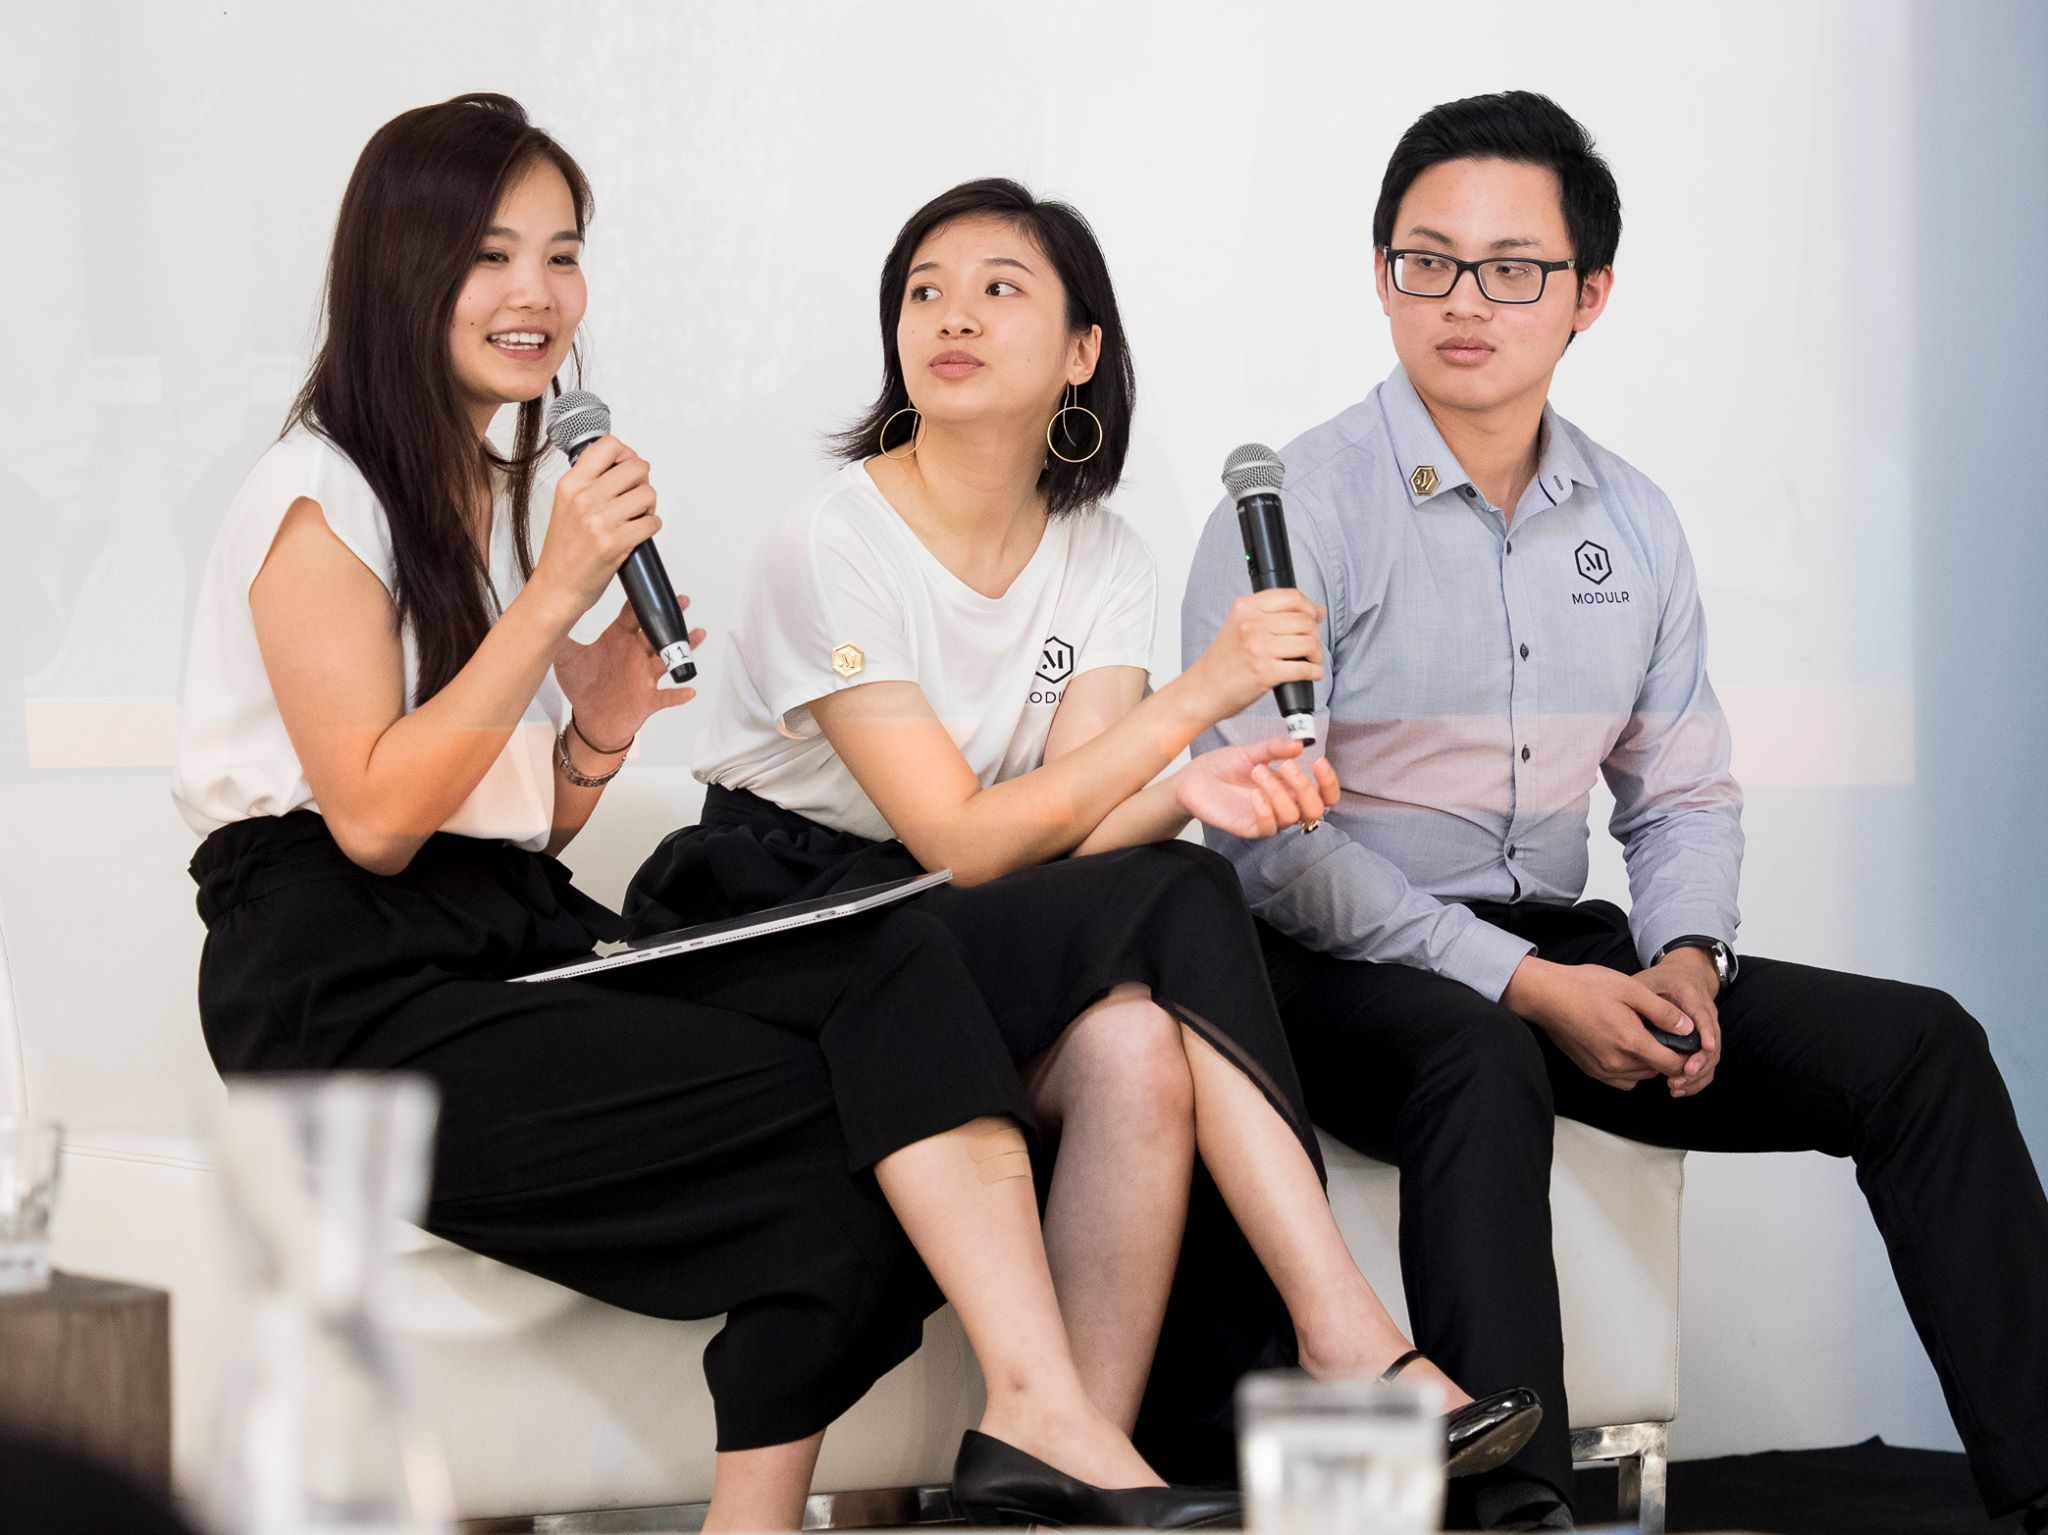 Modulr Tech's cofounders - Julia Huynh, Andrea Yee, and Khoi Phan presenting at the Unearthed Solutions Perth Demo Day 2017